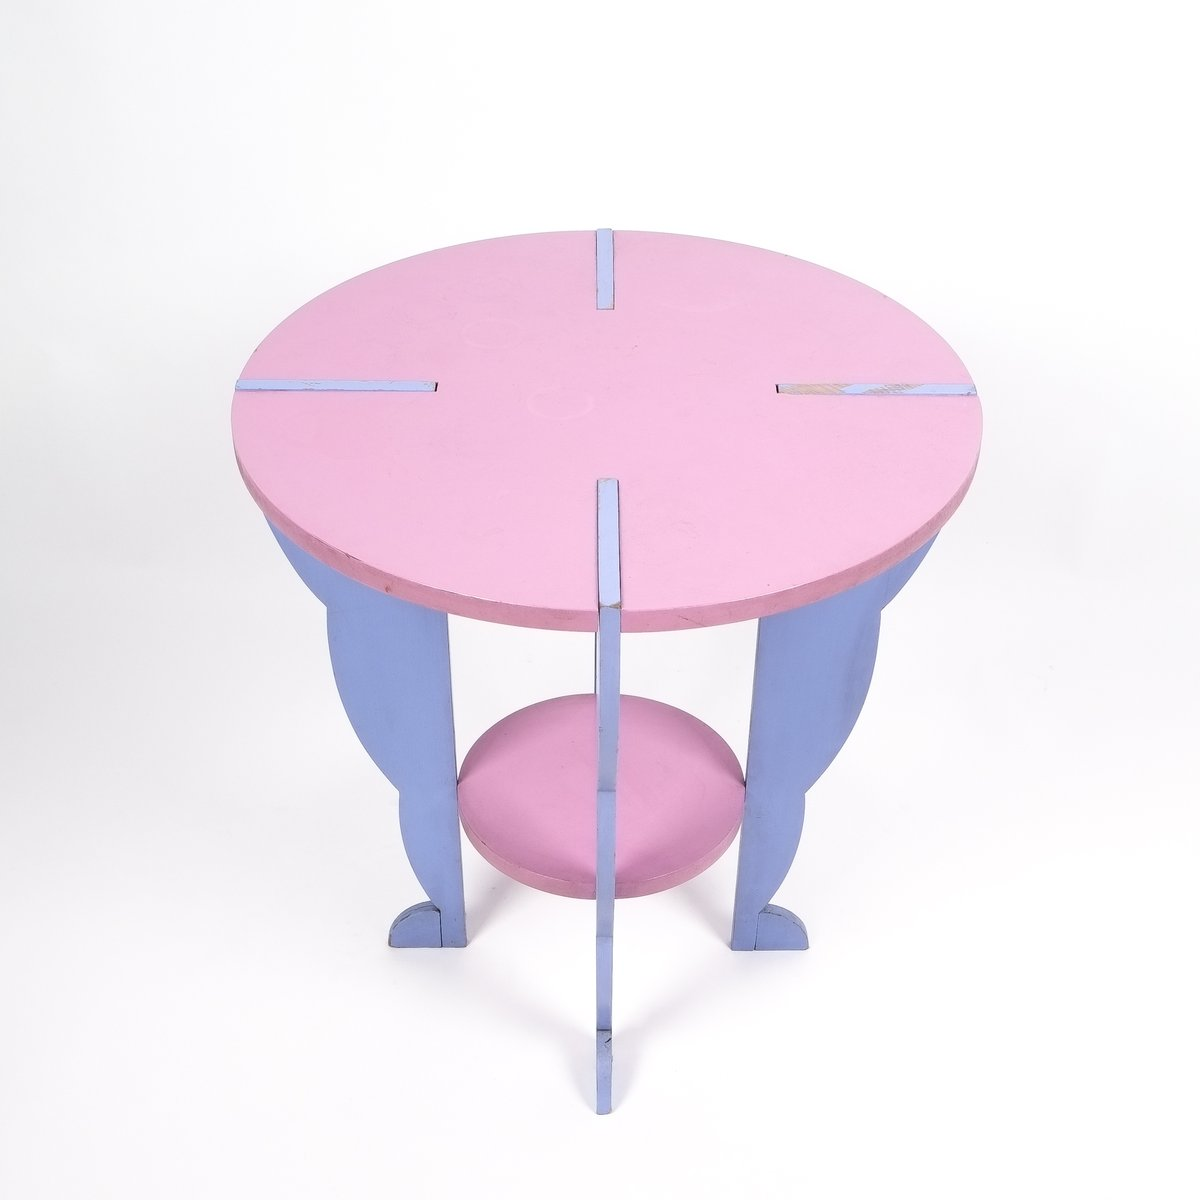 Postmodern flessuosa series side table by ugo la pietra for Serie a table 99 00